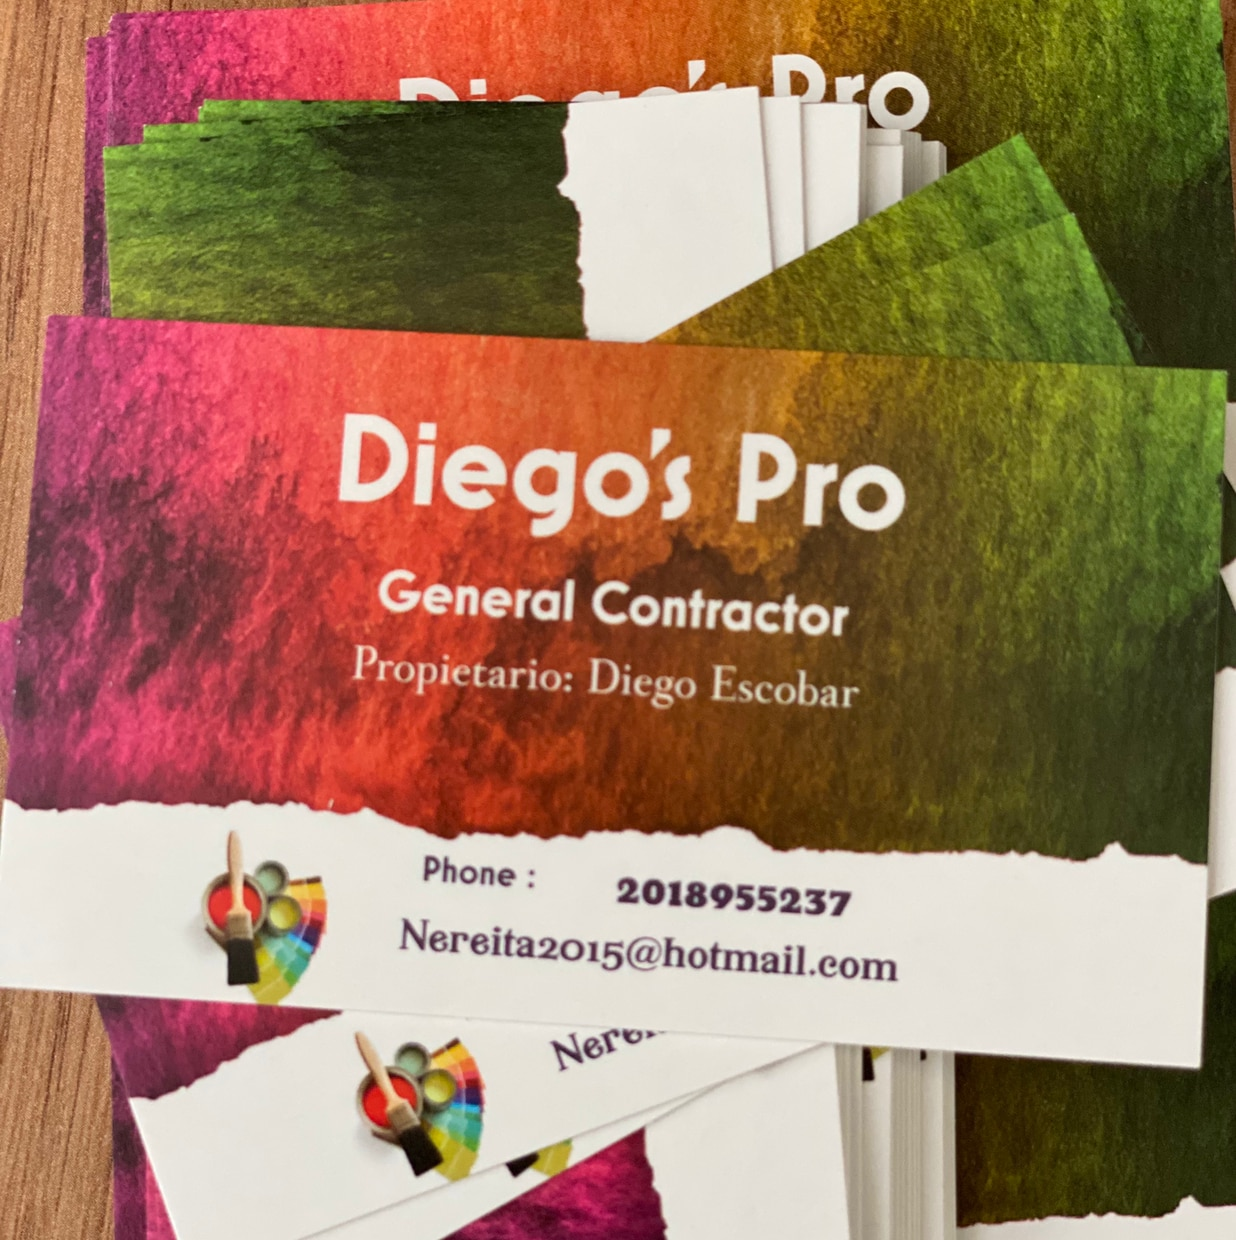 Diego's Pro General Contractor